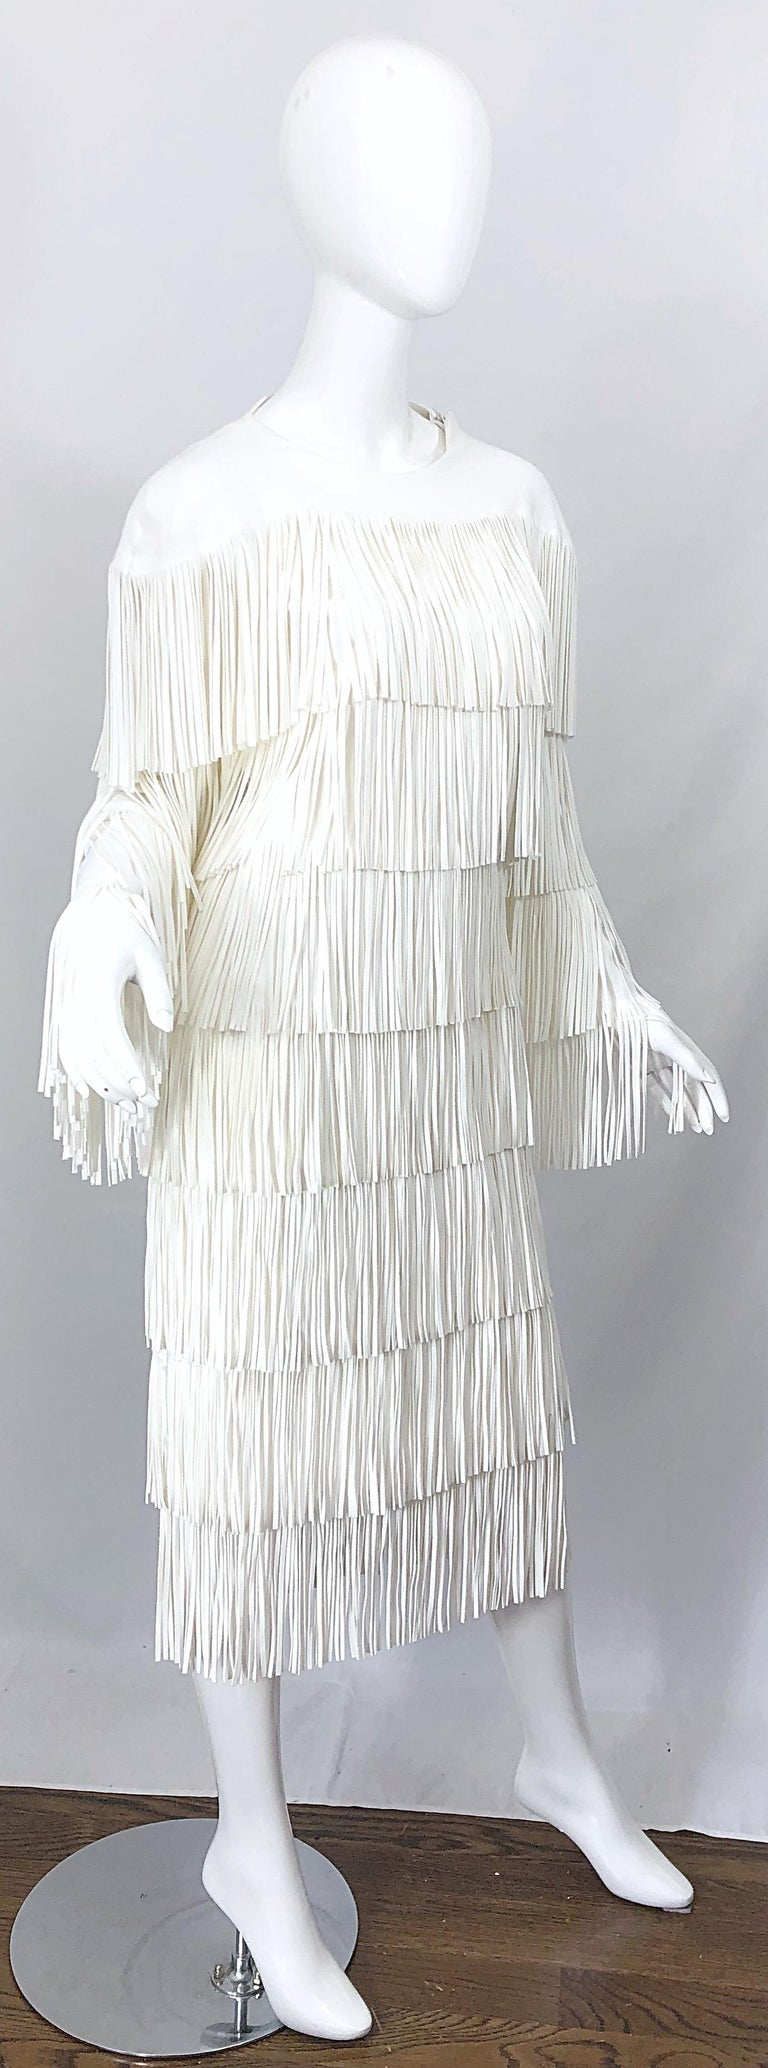 NWT Tom Ford $7,000 Runway Fall 2015 Size 42 / 8 White Open Back Fringe Dress For Sale 6